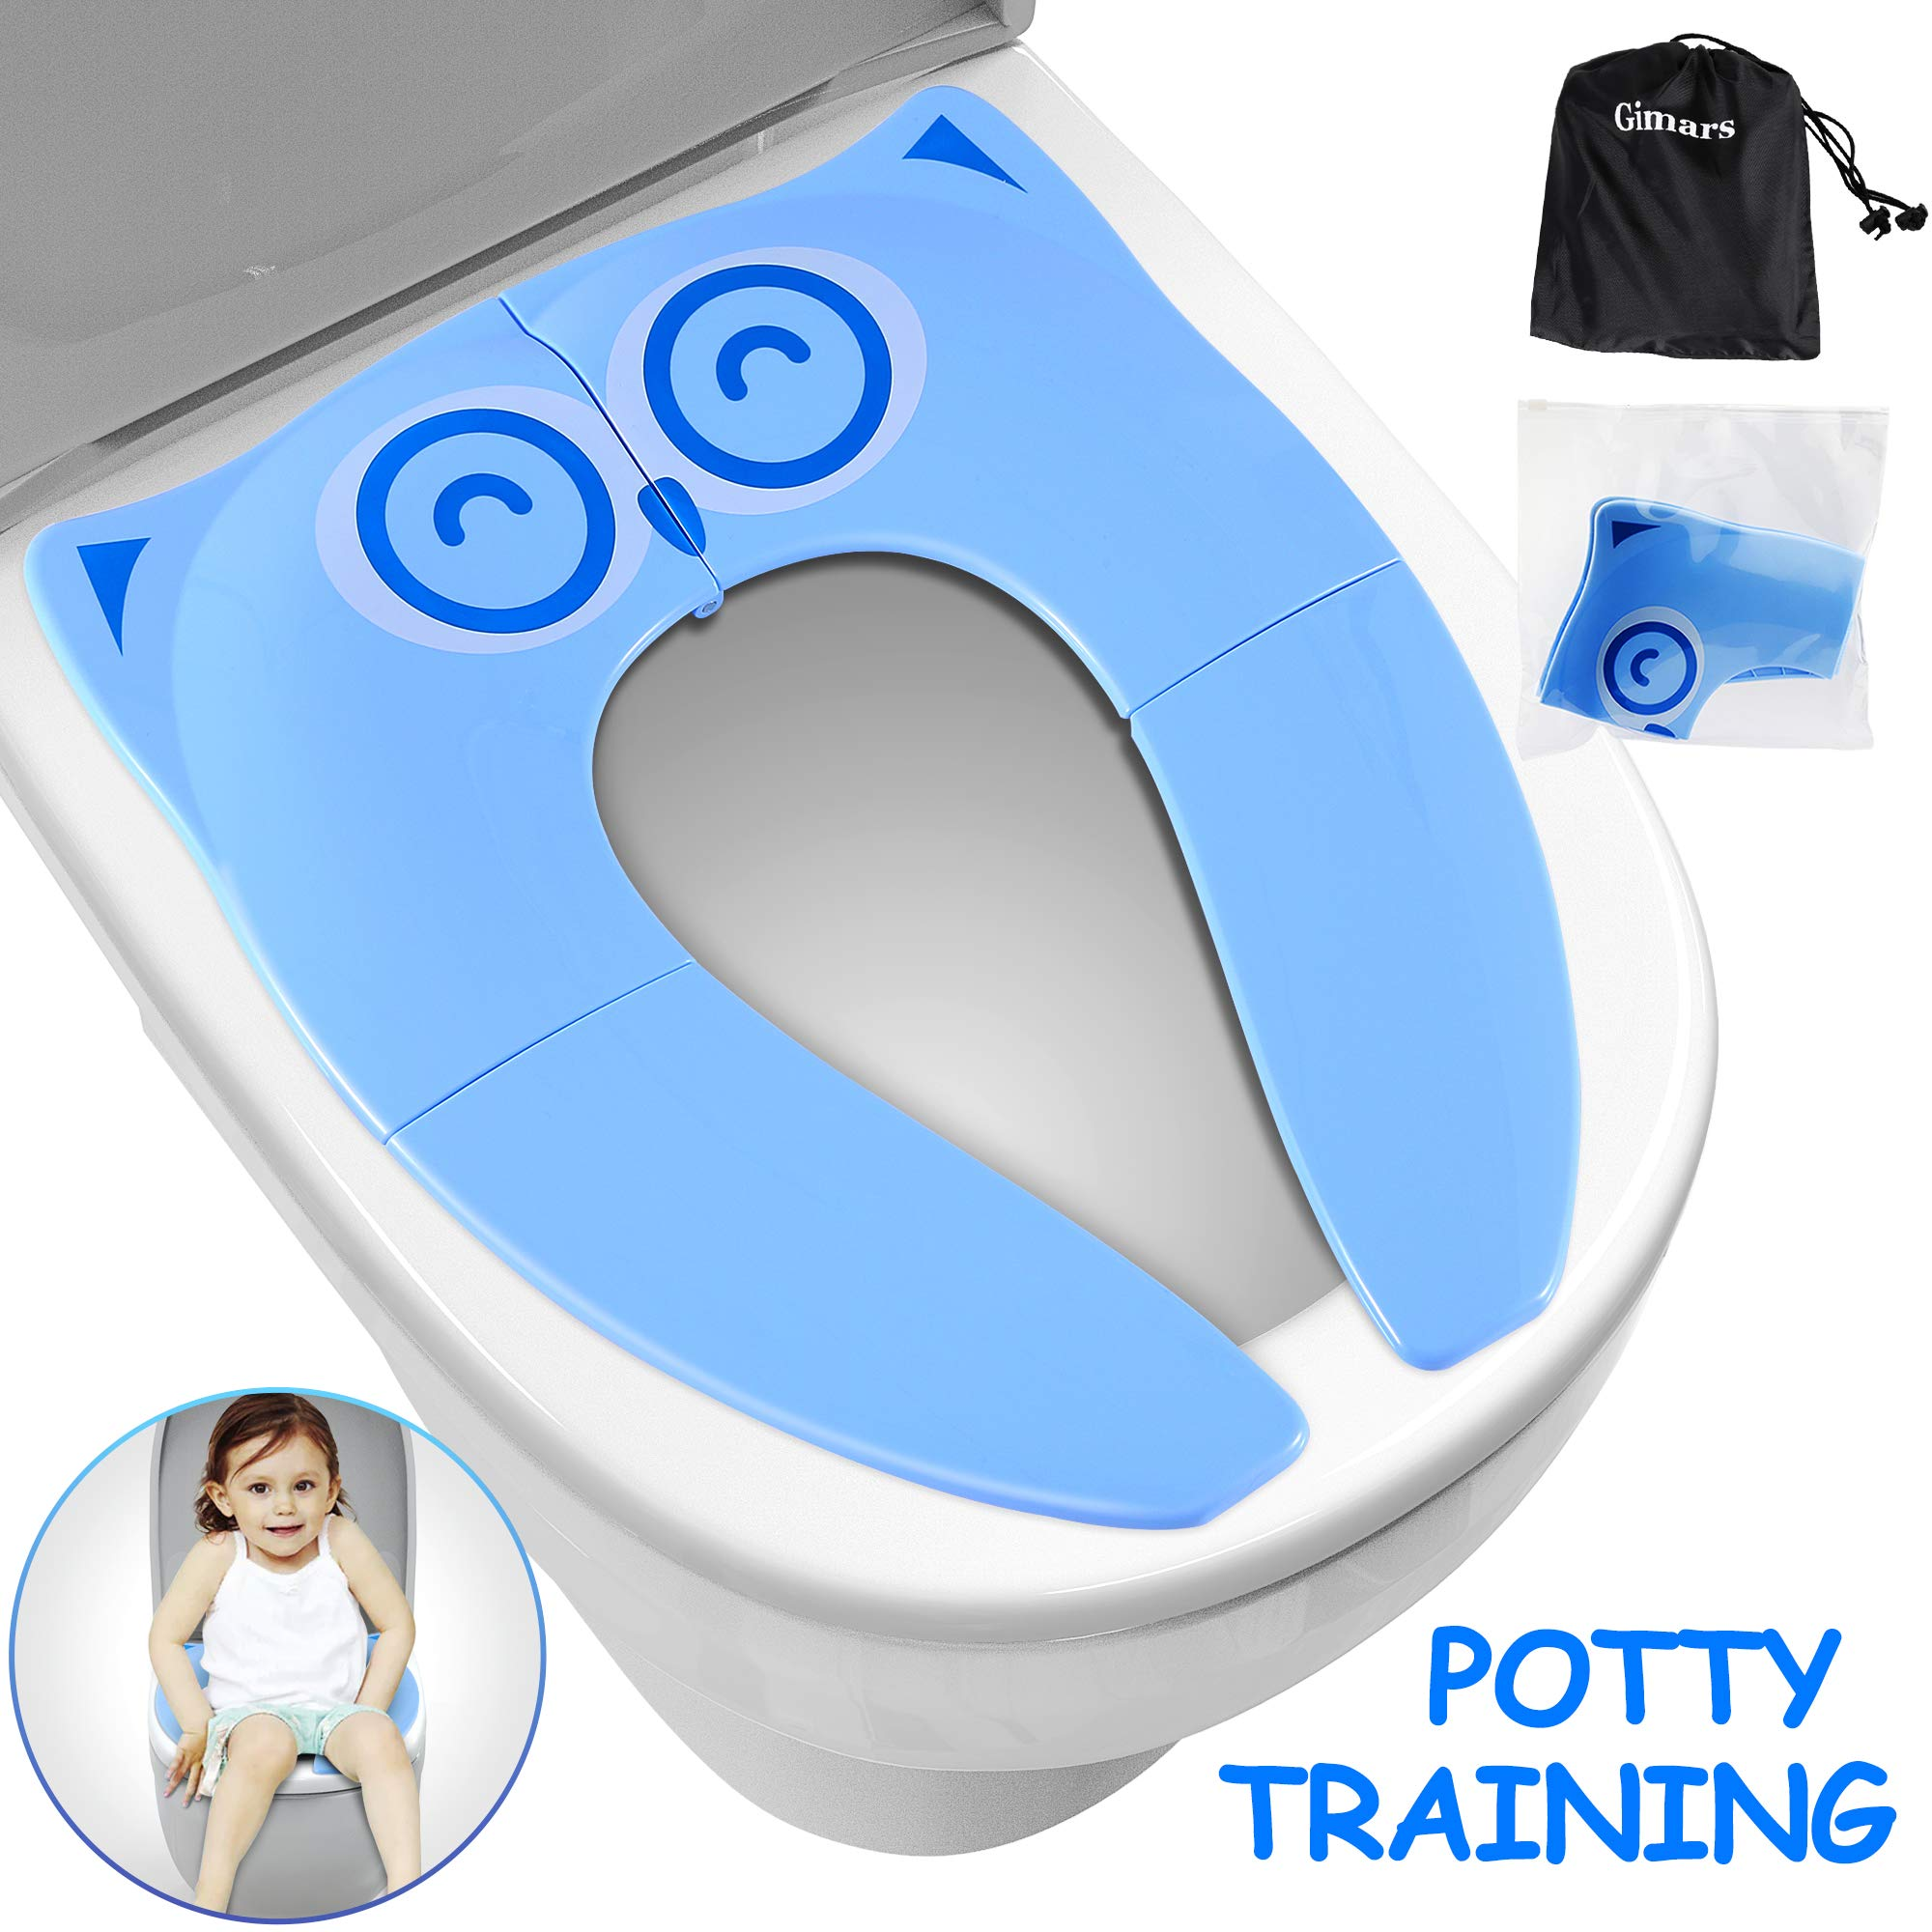 Gimars Upgrade Folding Large Non Slip Silicone Pads Travel Portable Reusable Toilet Potty Training Seat Covers Liners with Carry Bag for Babies, Toddlers and Kids,Blue